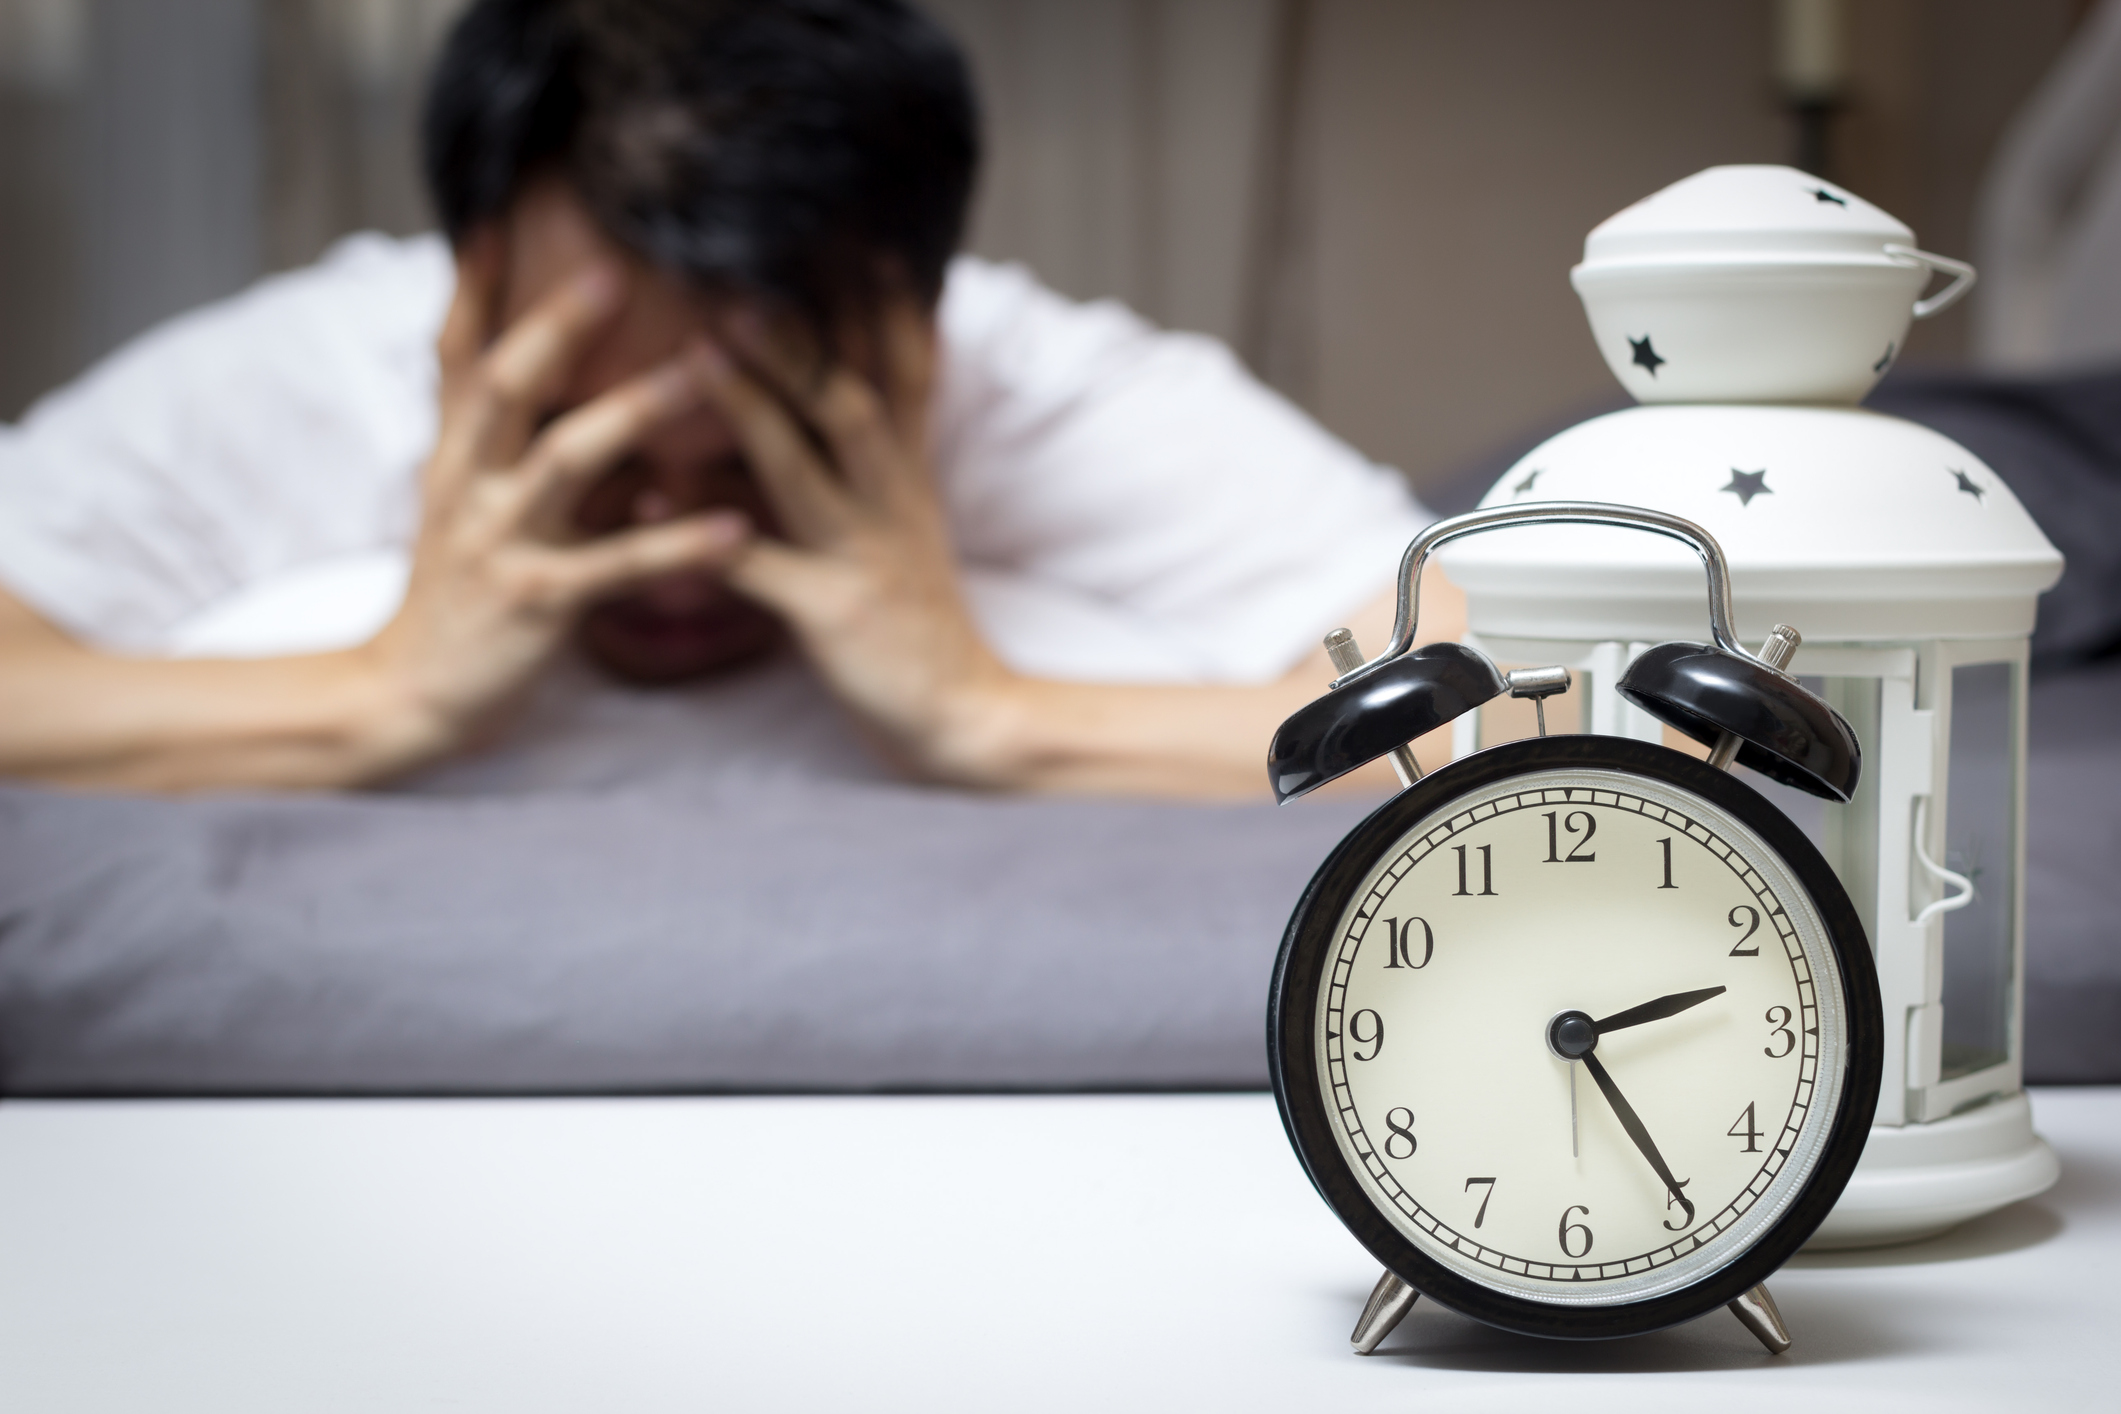 Asian man in bed suffering insomnia (Thinkstock/PA)